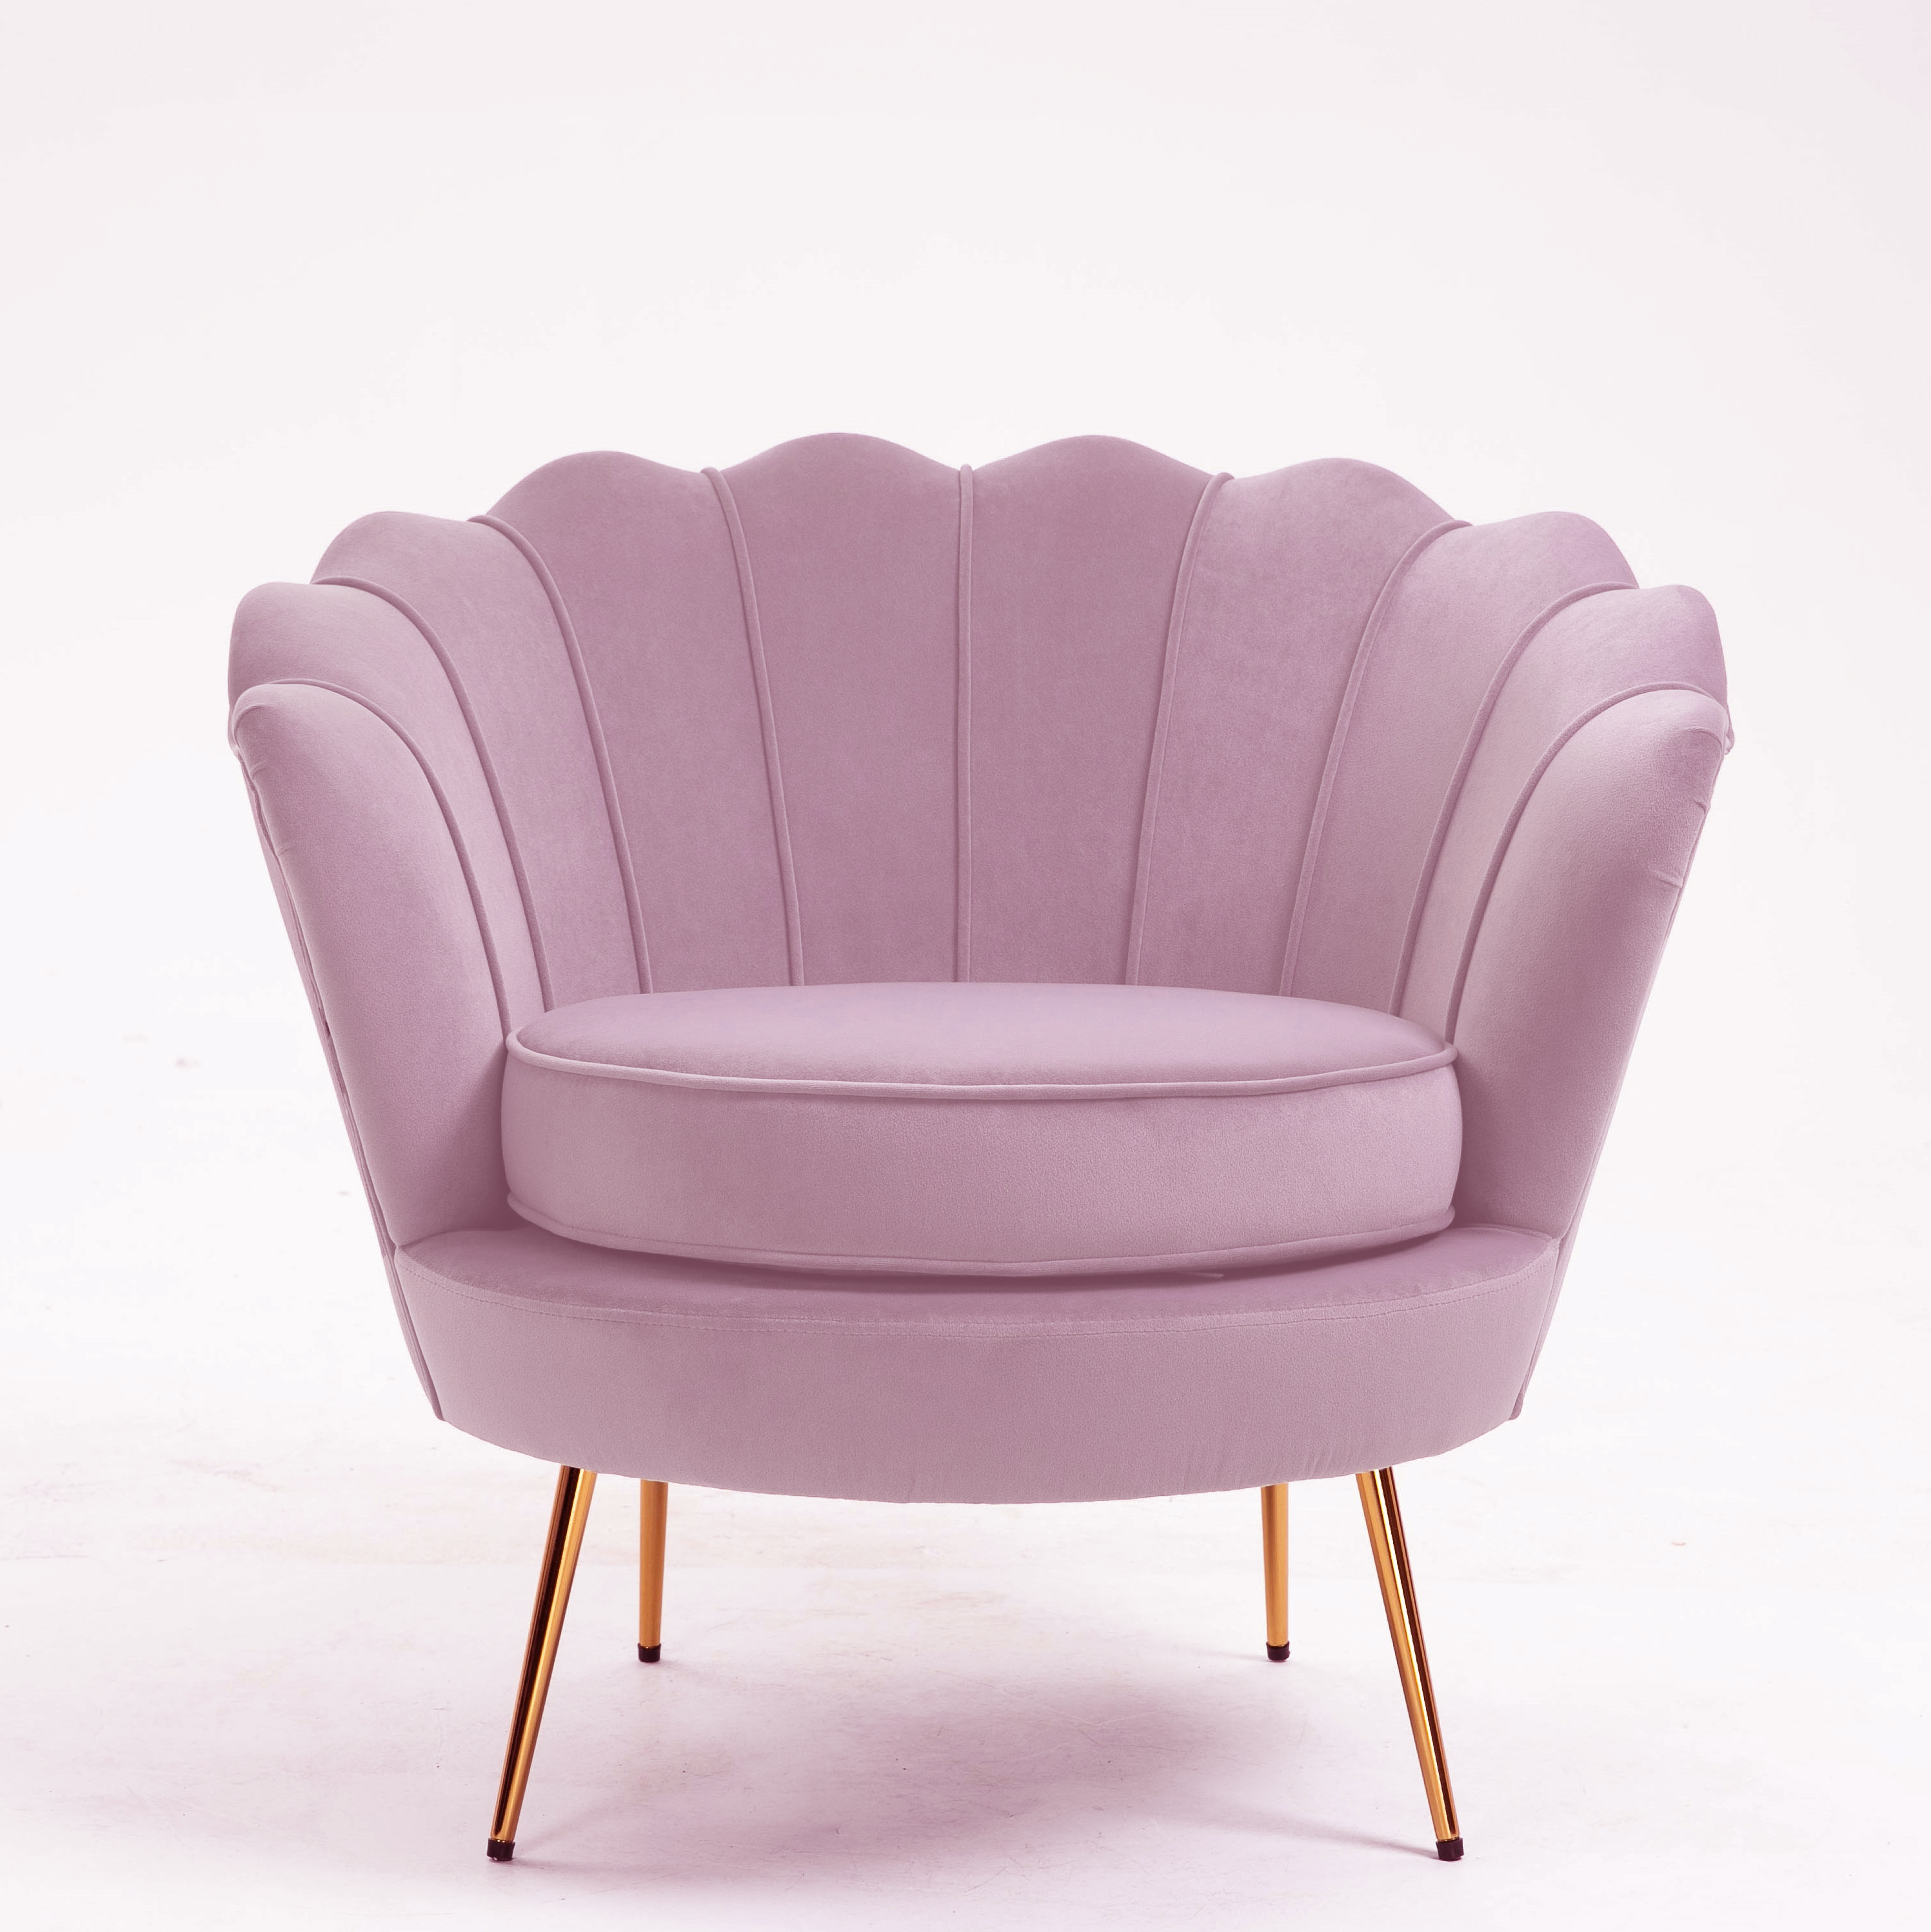 Accent Chairs For Living Room, Single Living Room Chairs